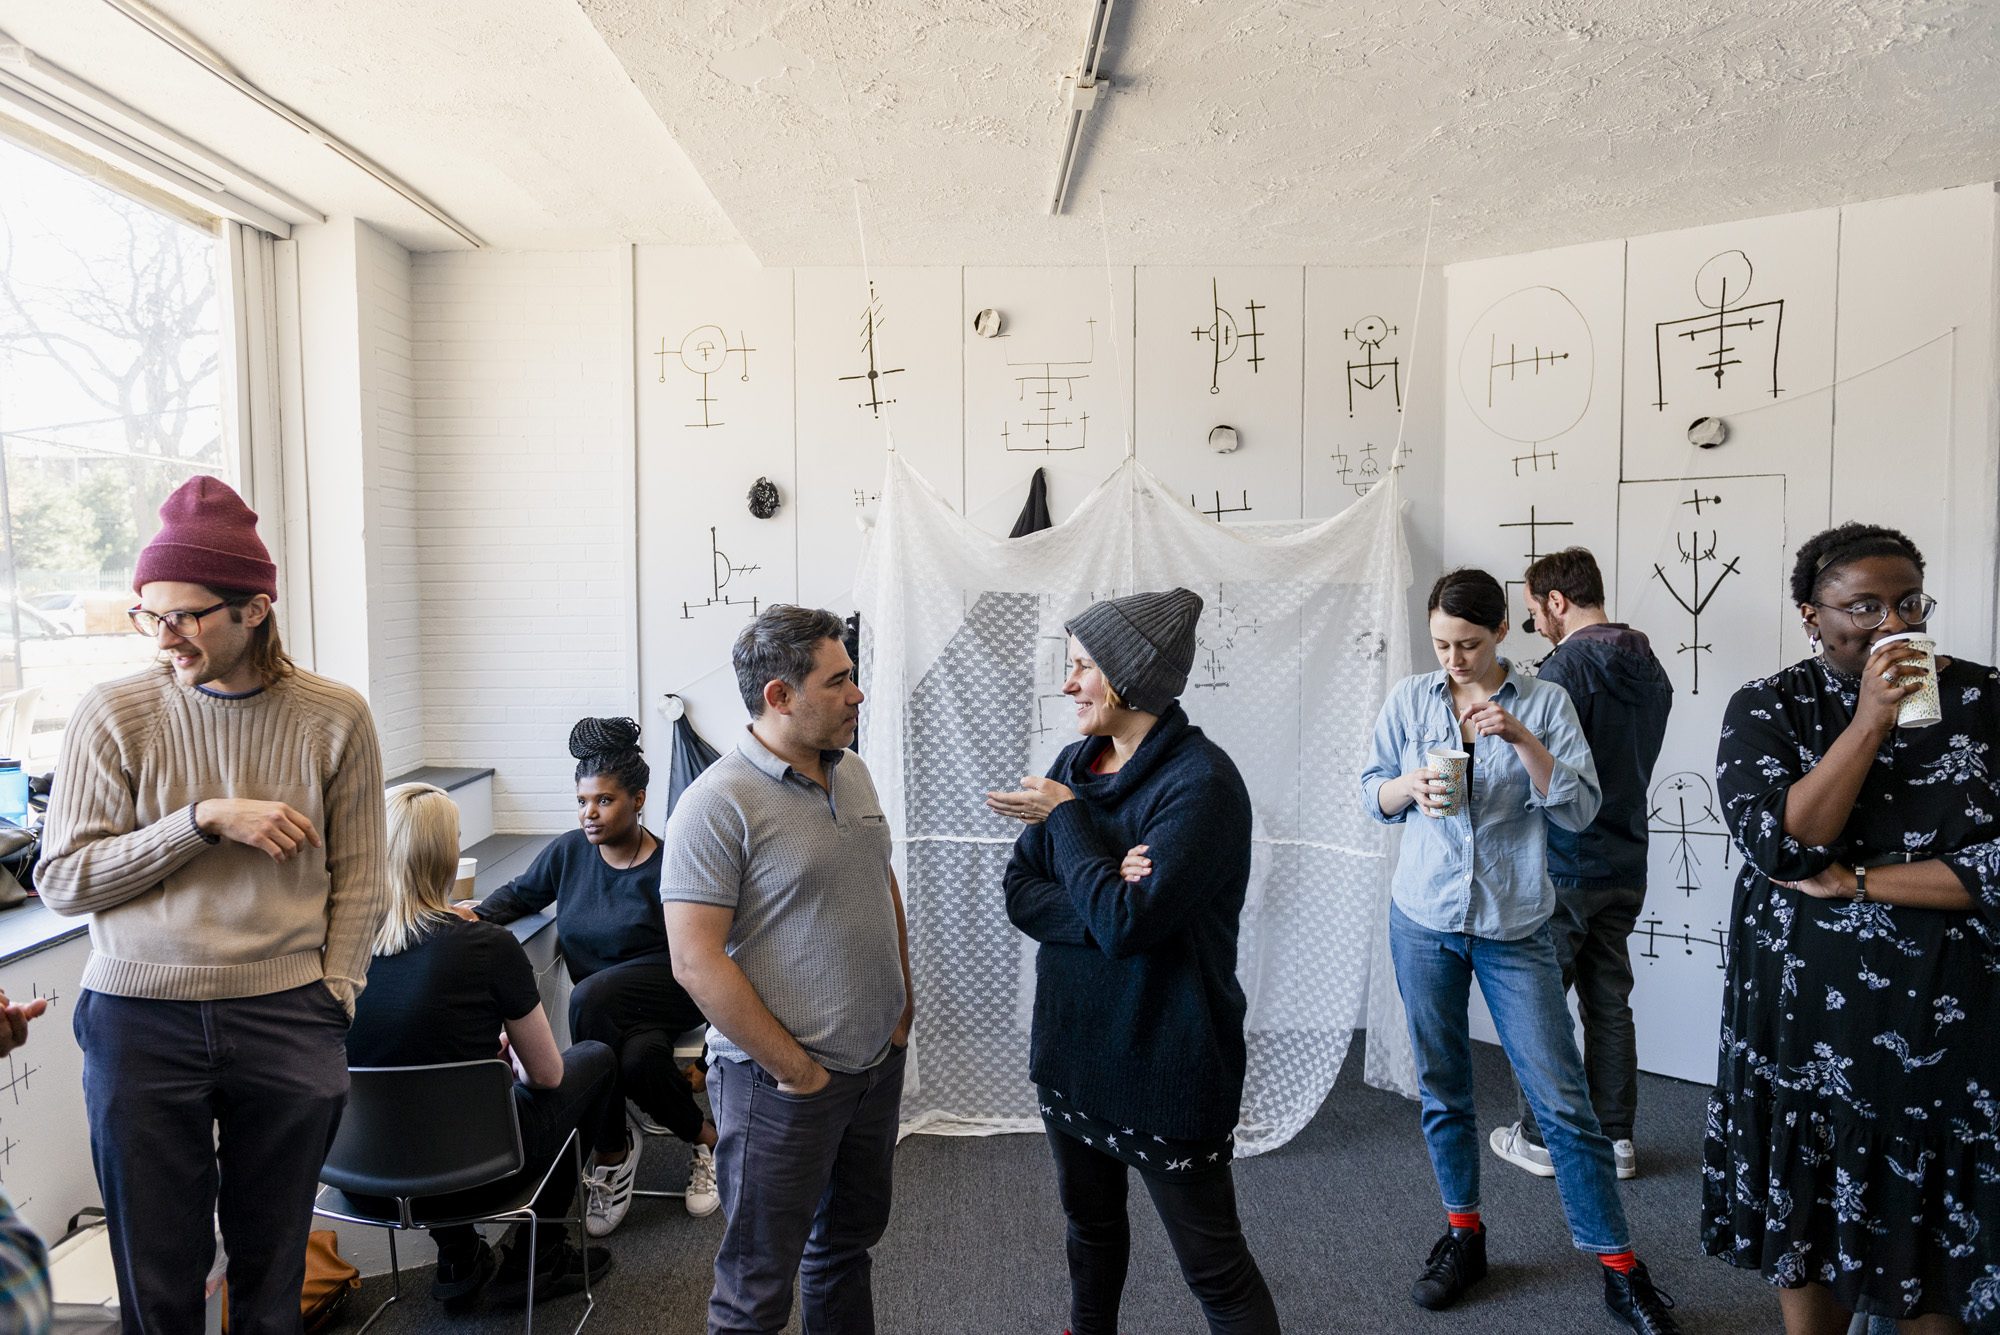 Image: A group of people standing inside Roman Susan. Zuri Washington (far right) transformed the space by painting black sigils on the white walls and adding fiber elements. Event co-curator Adia Sykes (back left) is sitting at a table with event attendee and facilitating a tarot card reading. Photo by Ryan Edmund.